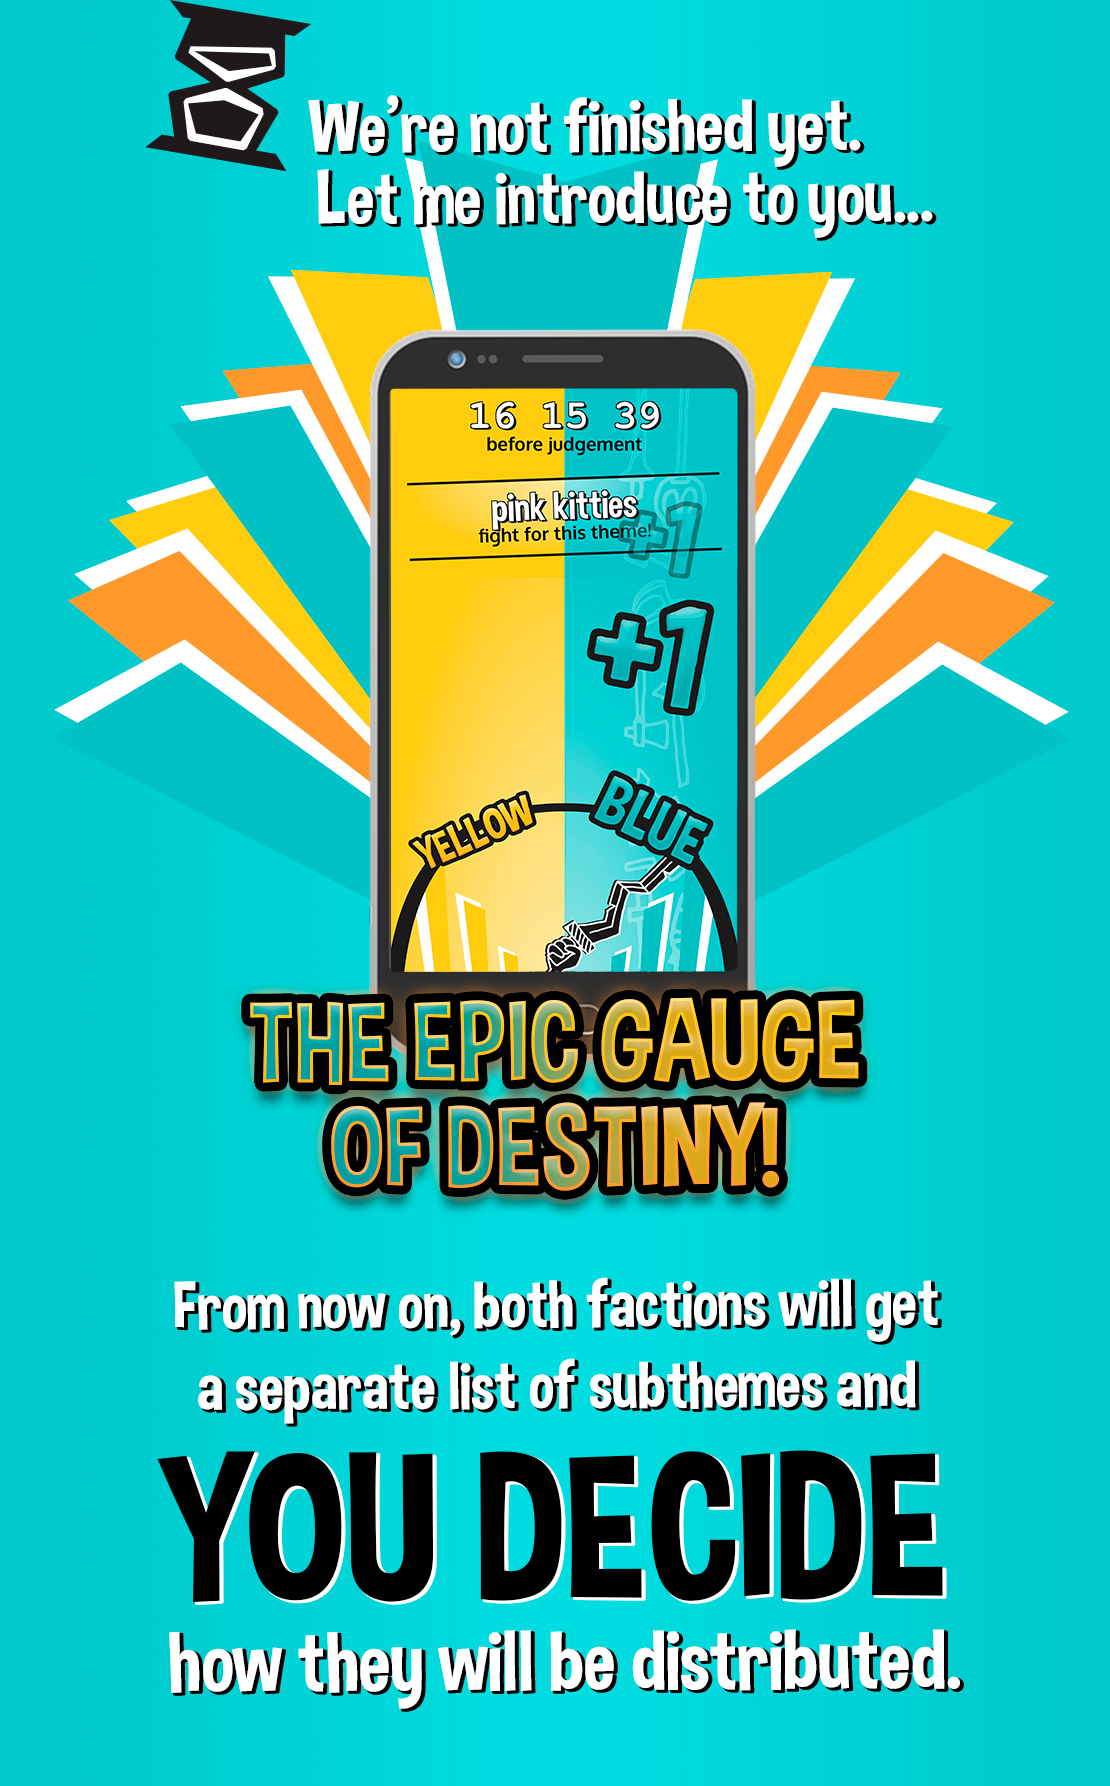 Introducing the epic gauge of destiny!